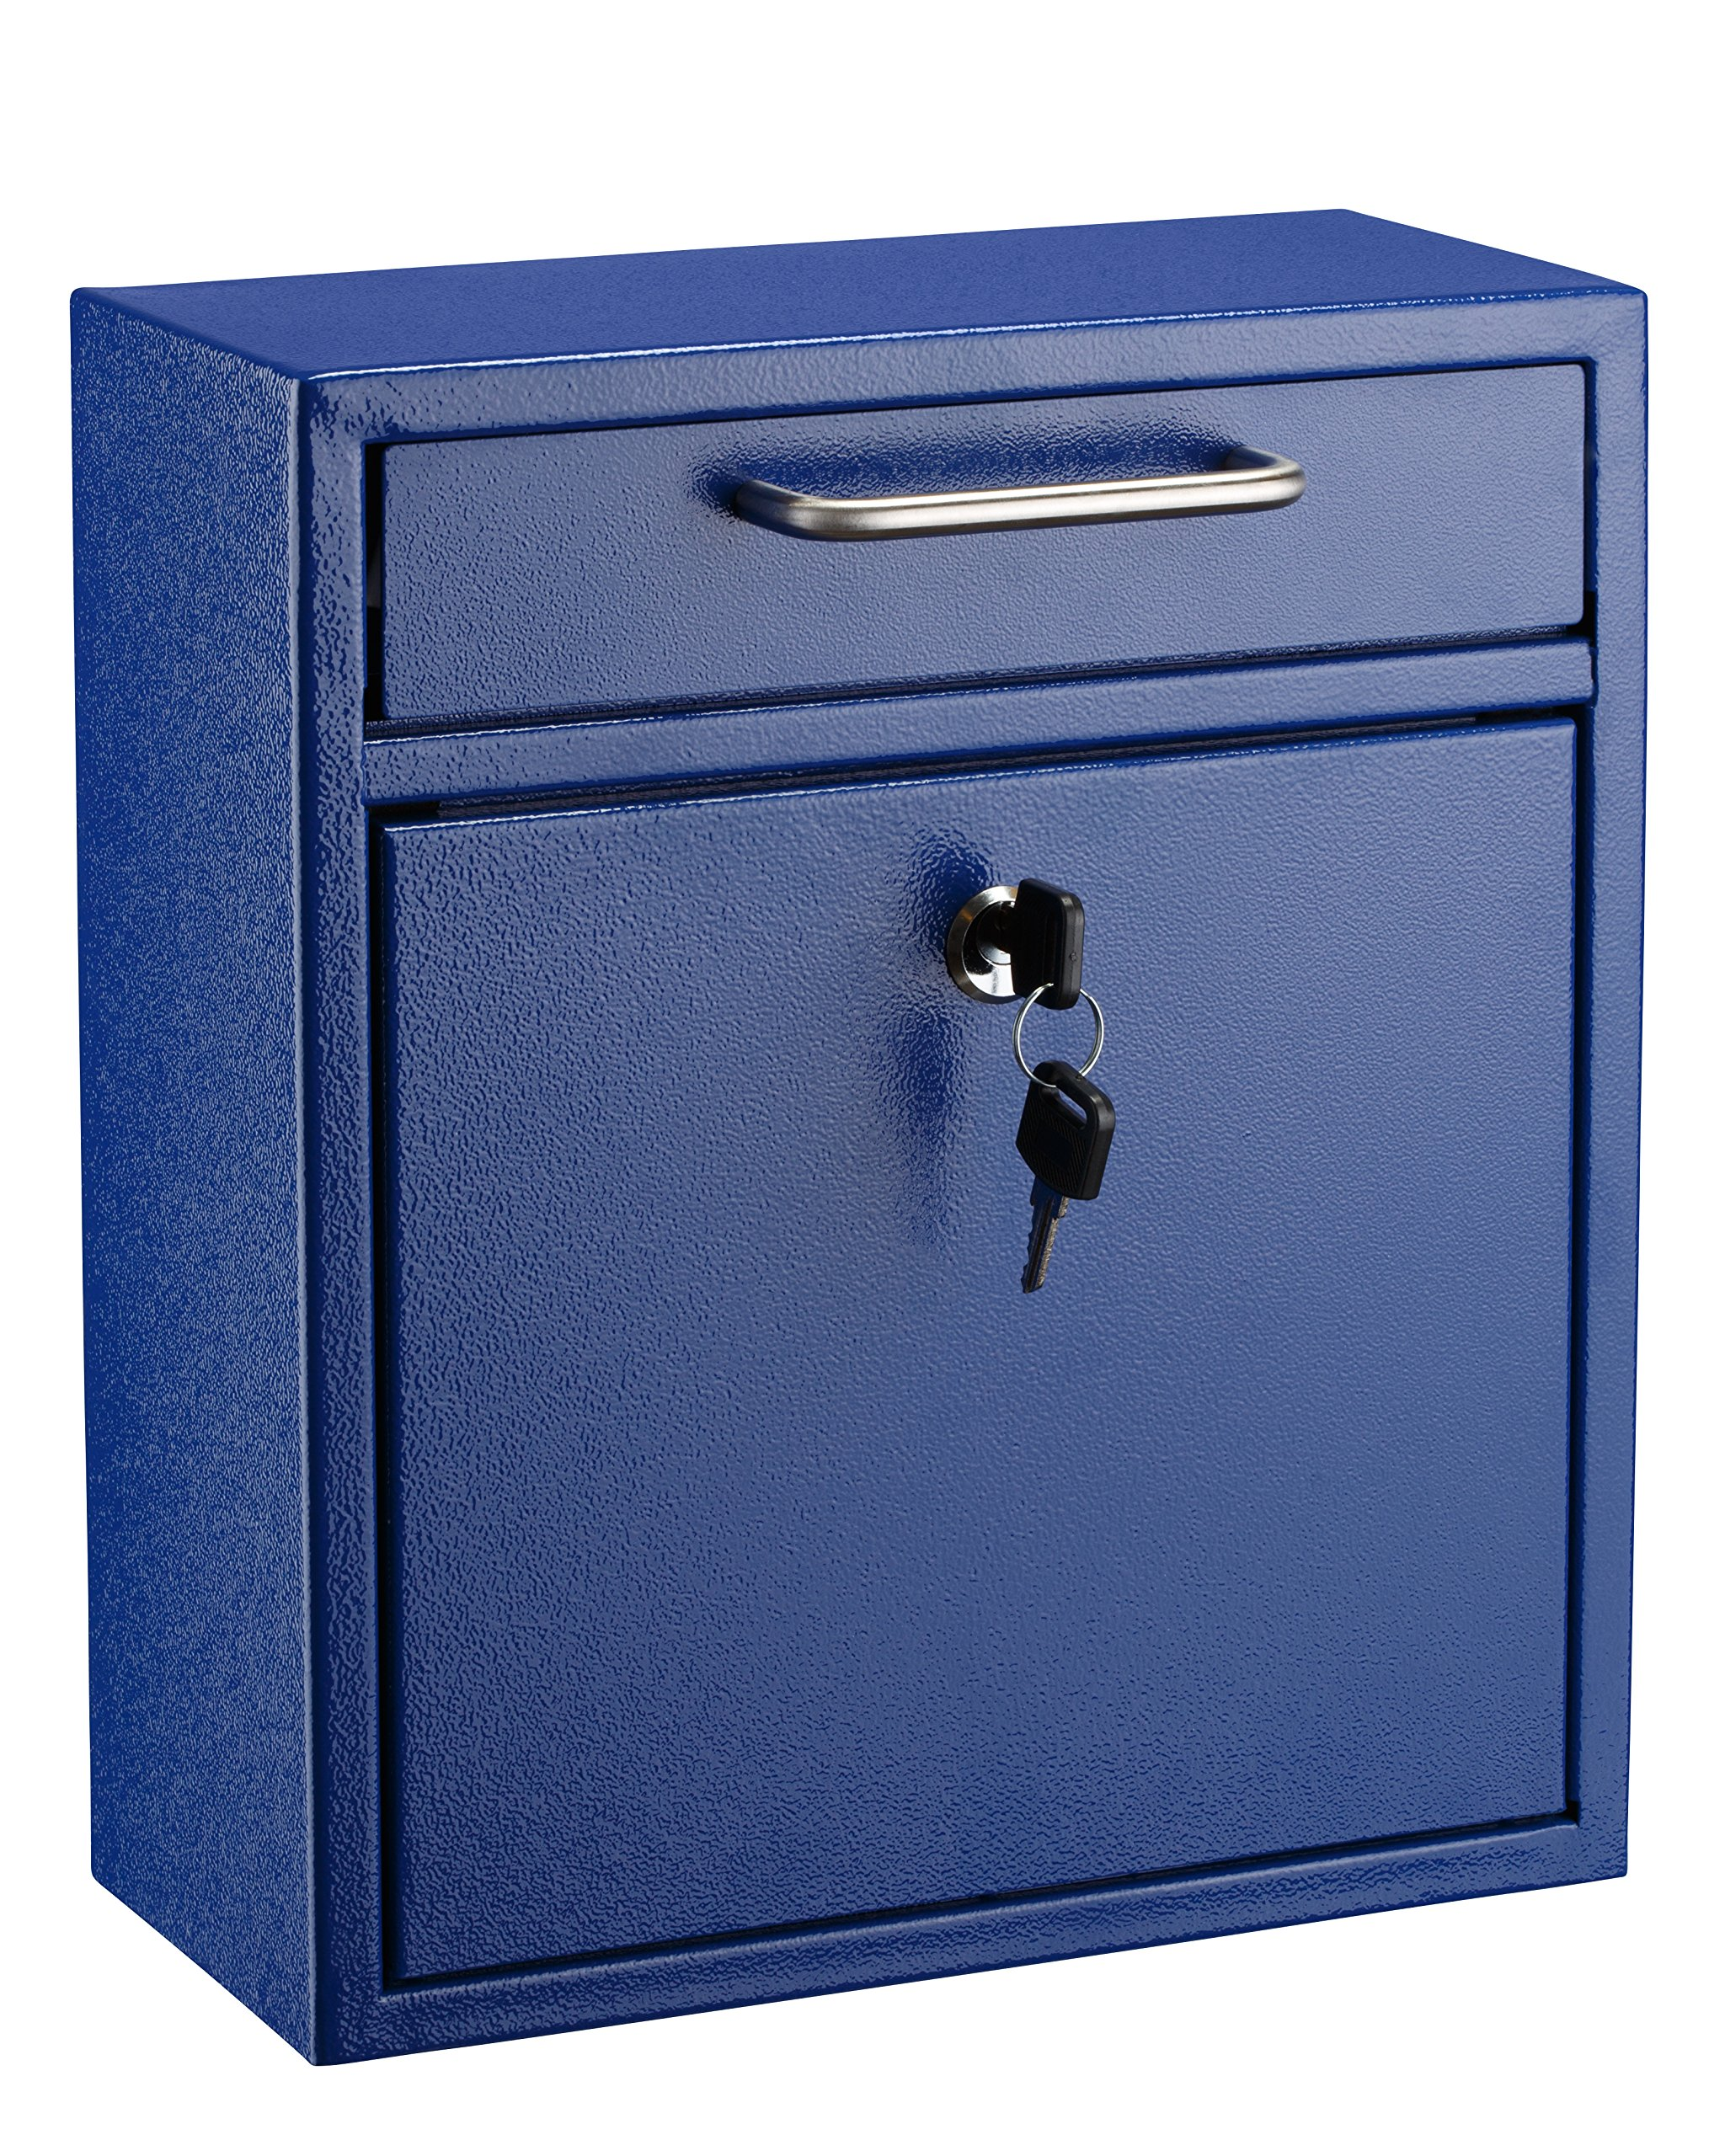 AdirOffice Locking Drop Box - Wall Mounted Mailbox - (Medium, Blue) by Adir Corp. (Image #1)